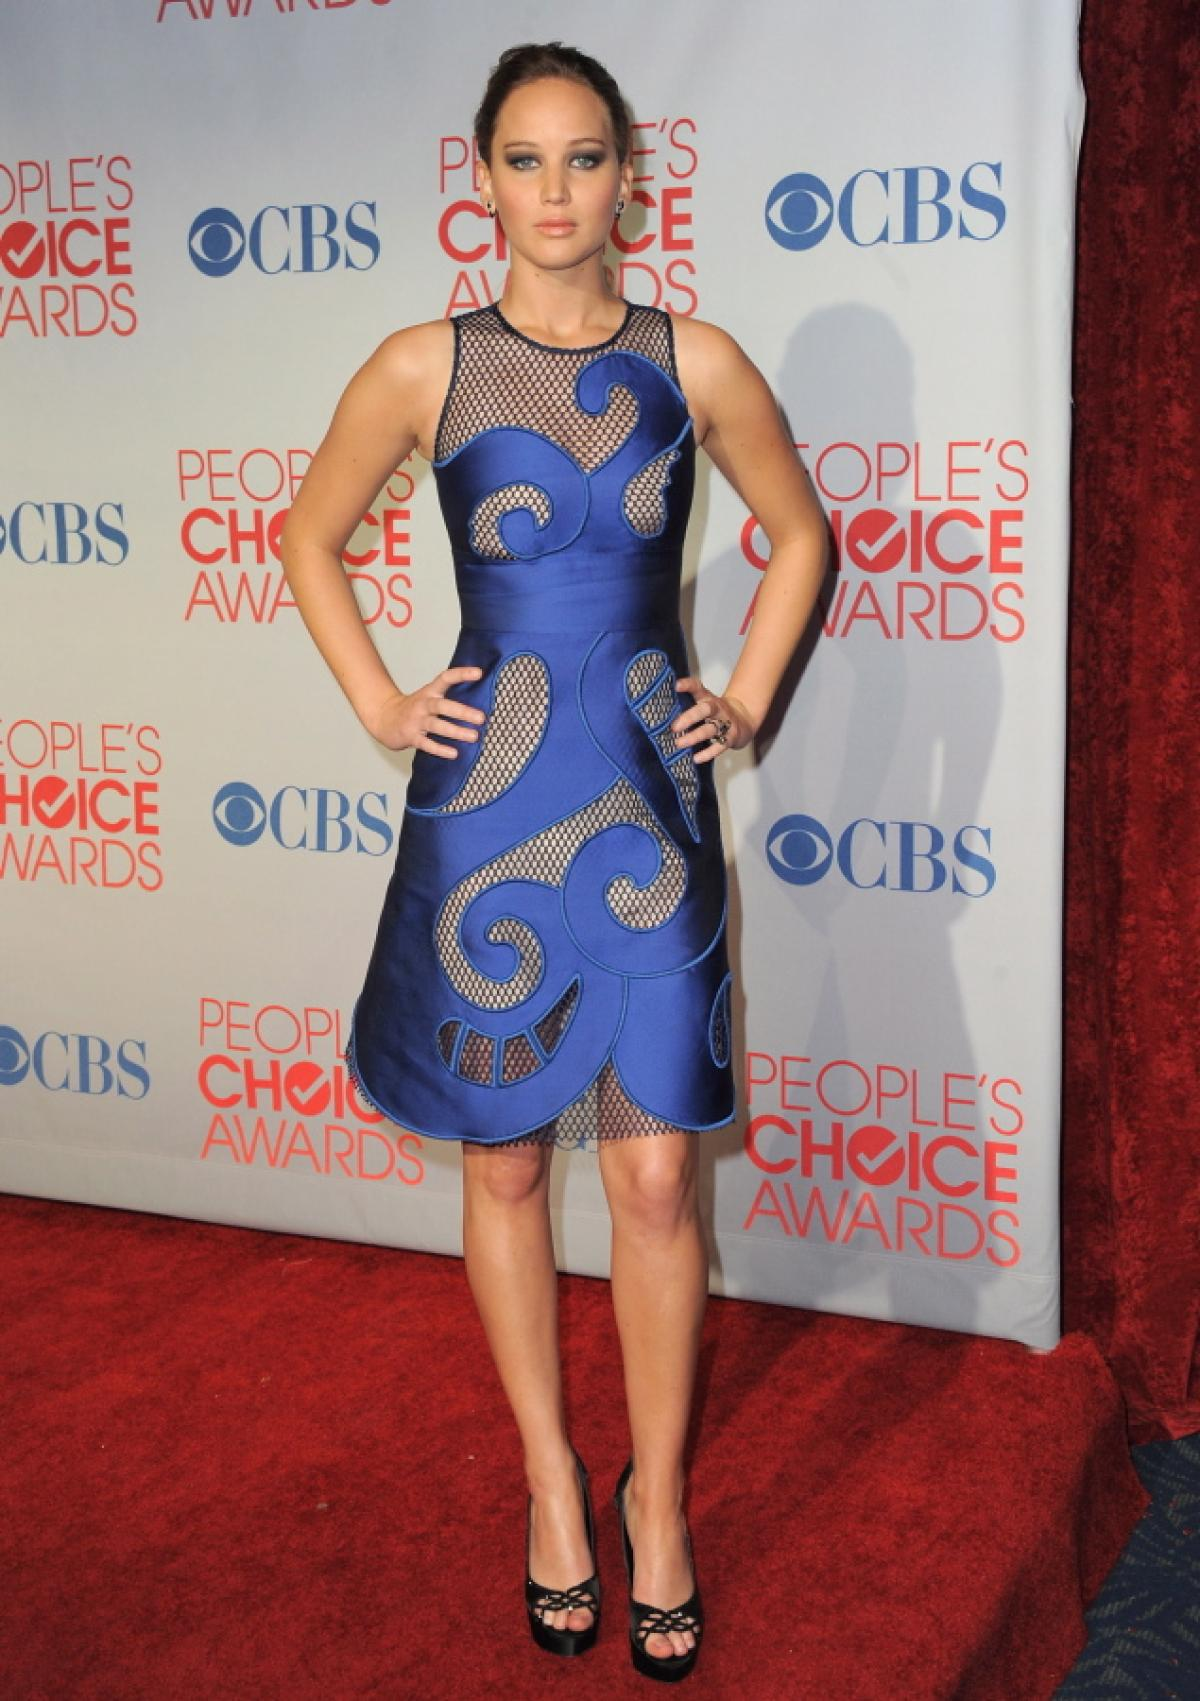 iktor and Rolf dress with mesh cutouts at The Peoples Choice Awards on Jan. 11, 2012